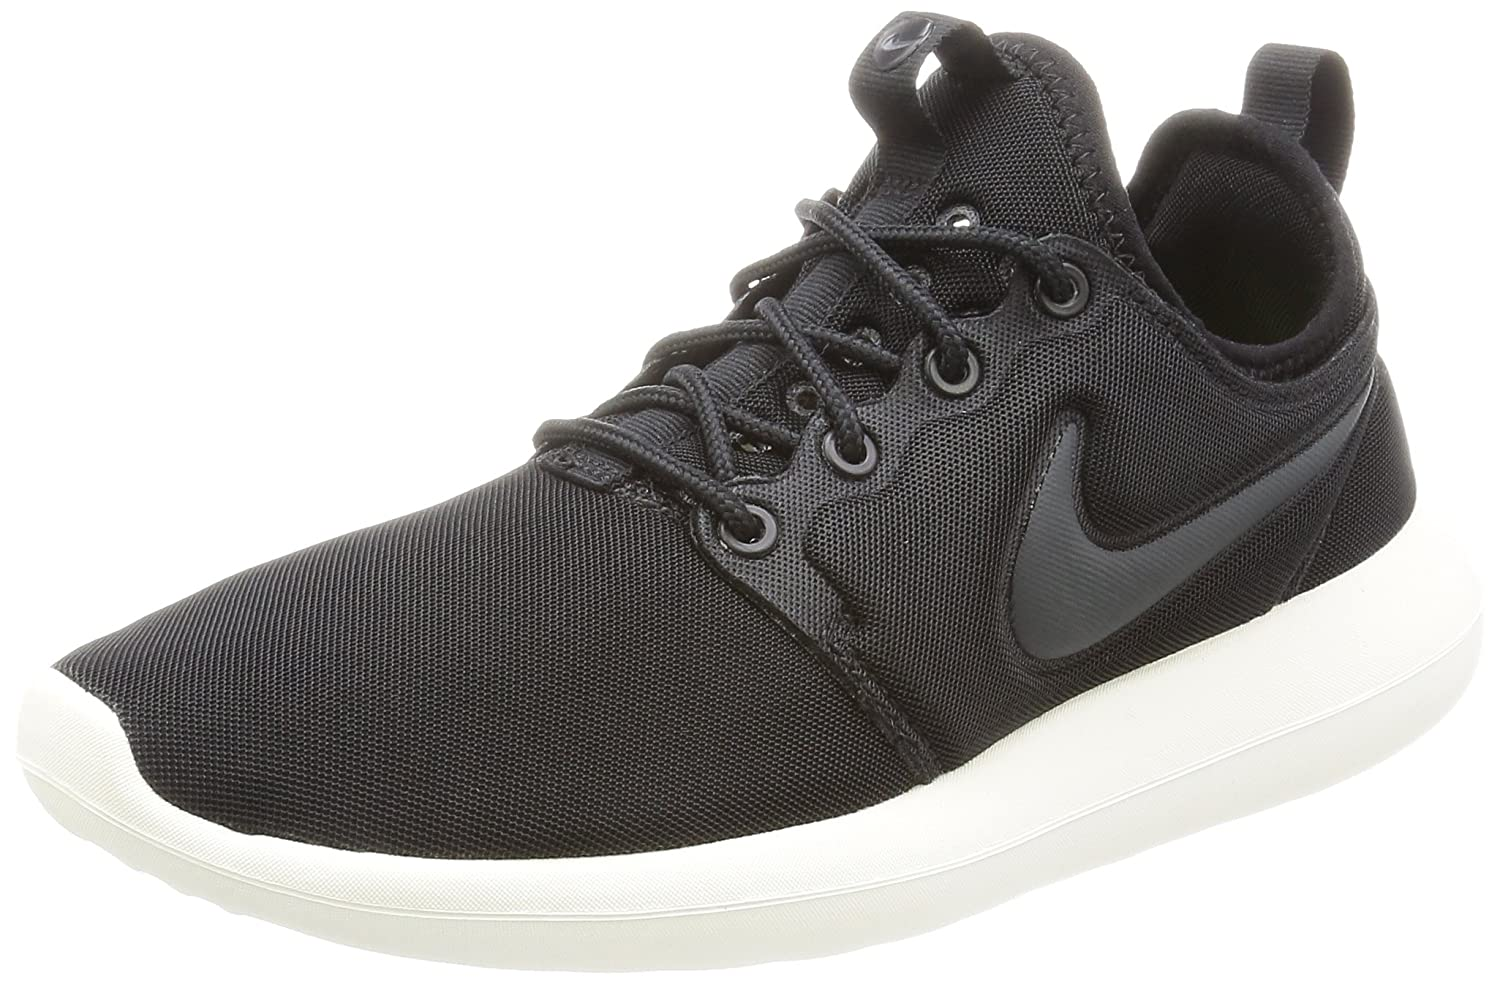 NIKE Women's Roshe Two Running Shoe B01KHQQOV0 6.5 B(M) US|Black / Anthracite-sail-volt